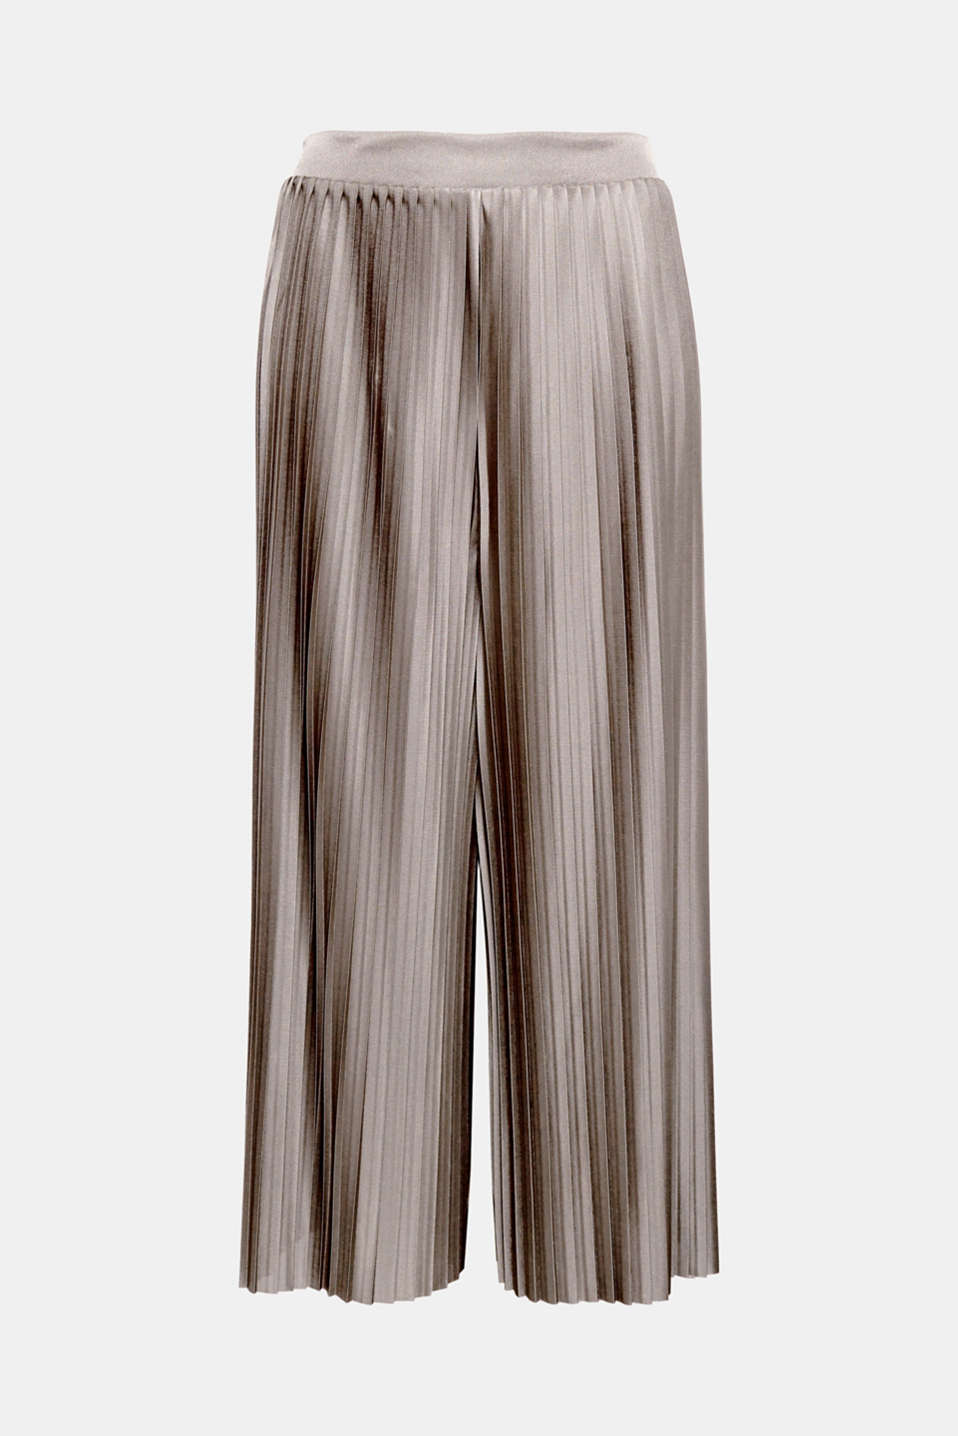 Chic, stylish and so comfy, these wide trousers feature pleats, an elasticated waist and an elegant, shimmering finish!